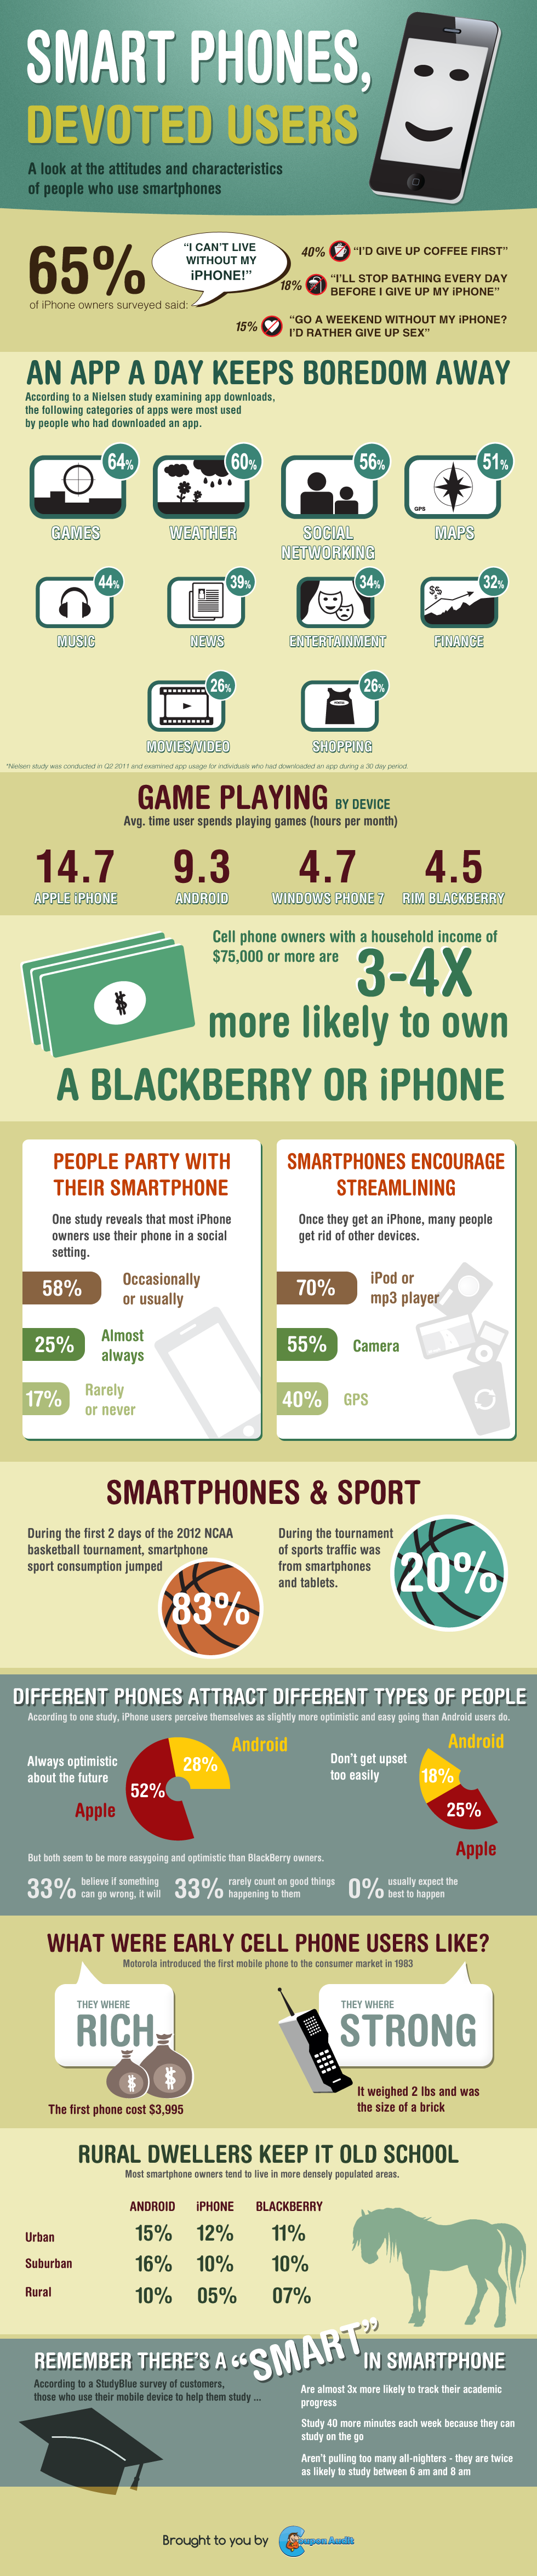 Smart Phones, Devoted Users [INFOGRAPHIC] smartphones devoted users L 7QyArg